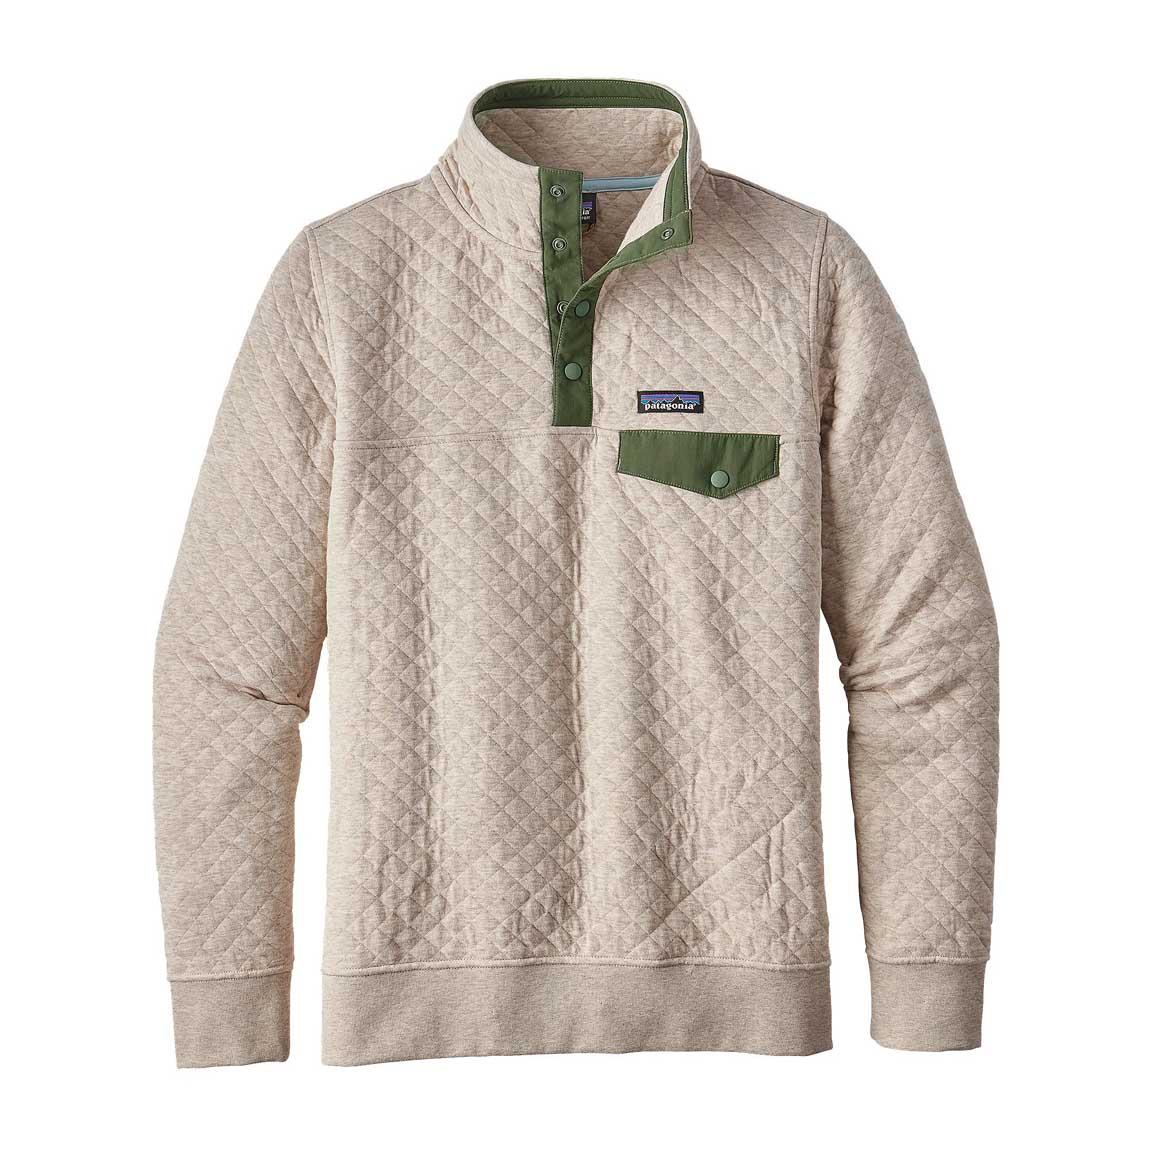 Patagonia Womens Cotton Quilt Snap-T Pullover, Birch White_1.jpg